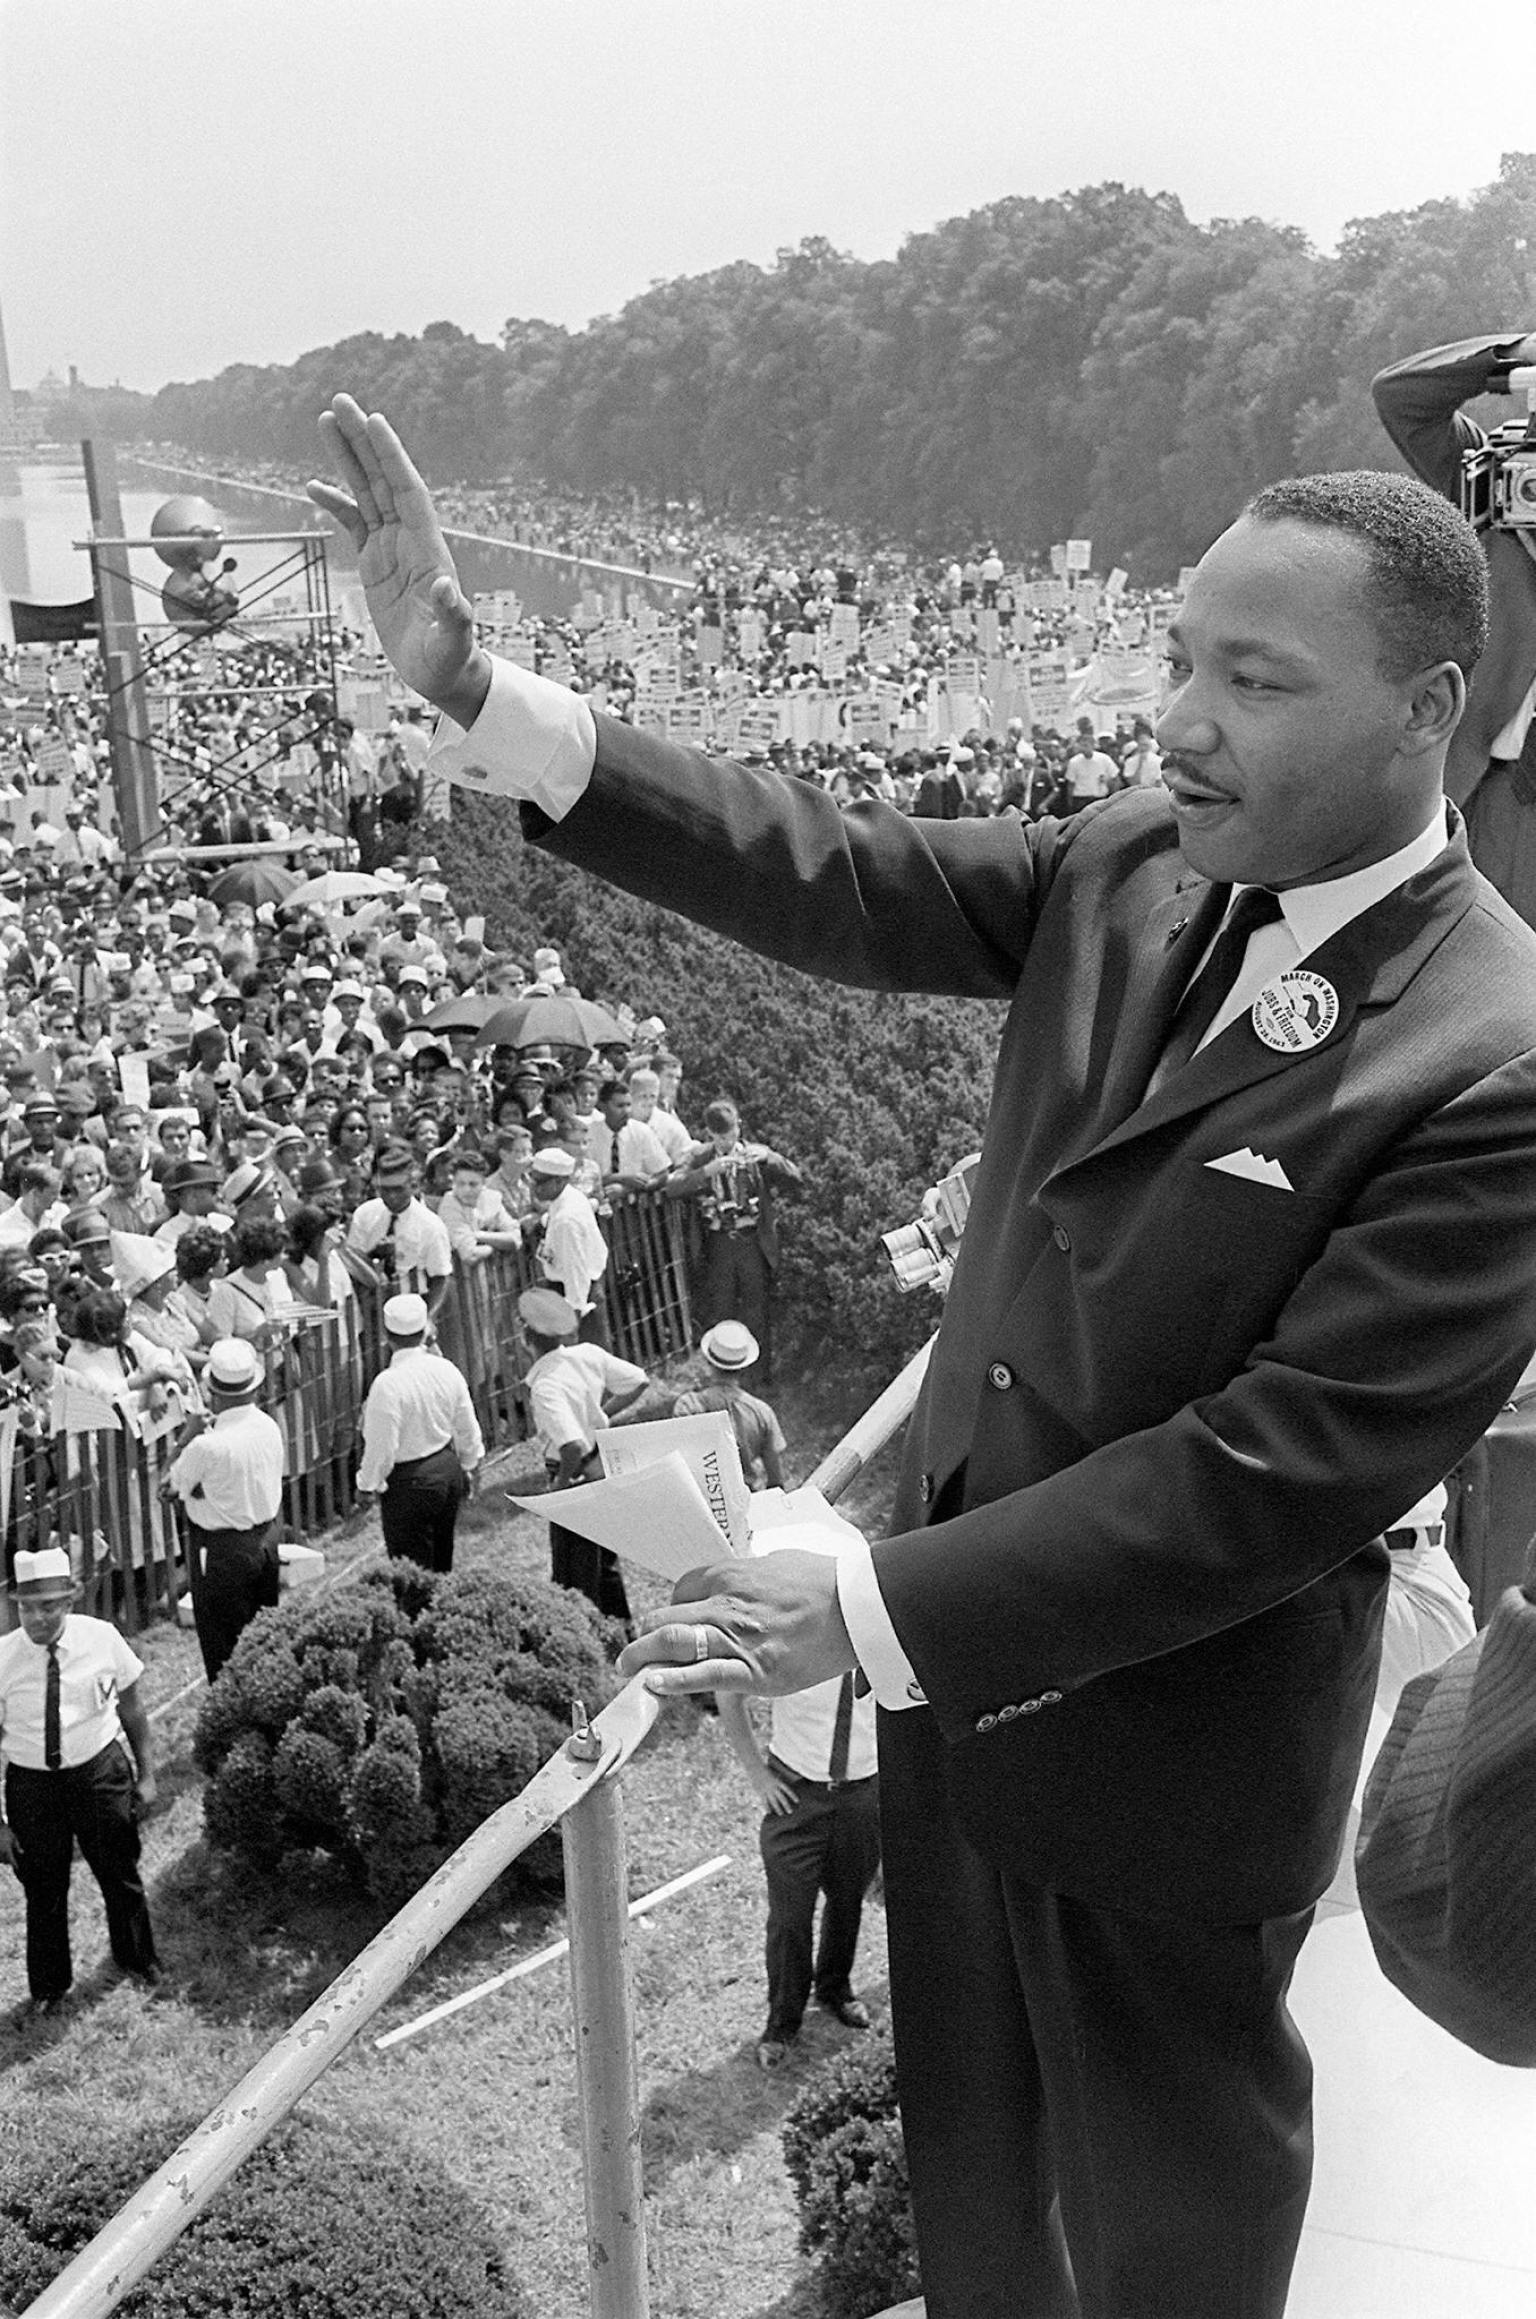 Essay Thesis Statement How Martin Luther Kings I Have A Dream Speech Changed The World   Huffpost How To Write A Proposal Essay Outline also Cause And Effect Essay Papers How Martin Luther Kings I Have A Dream Speech Changed The World  Persuasive Essay Thesis Statement